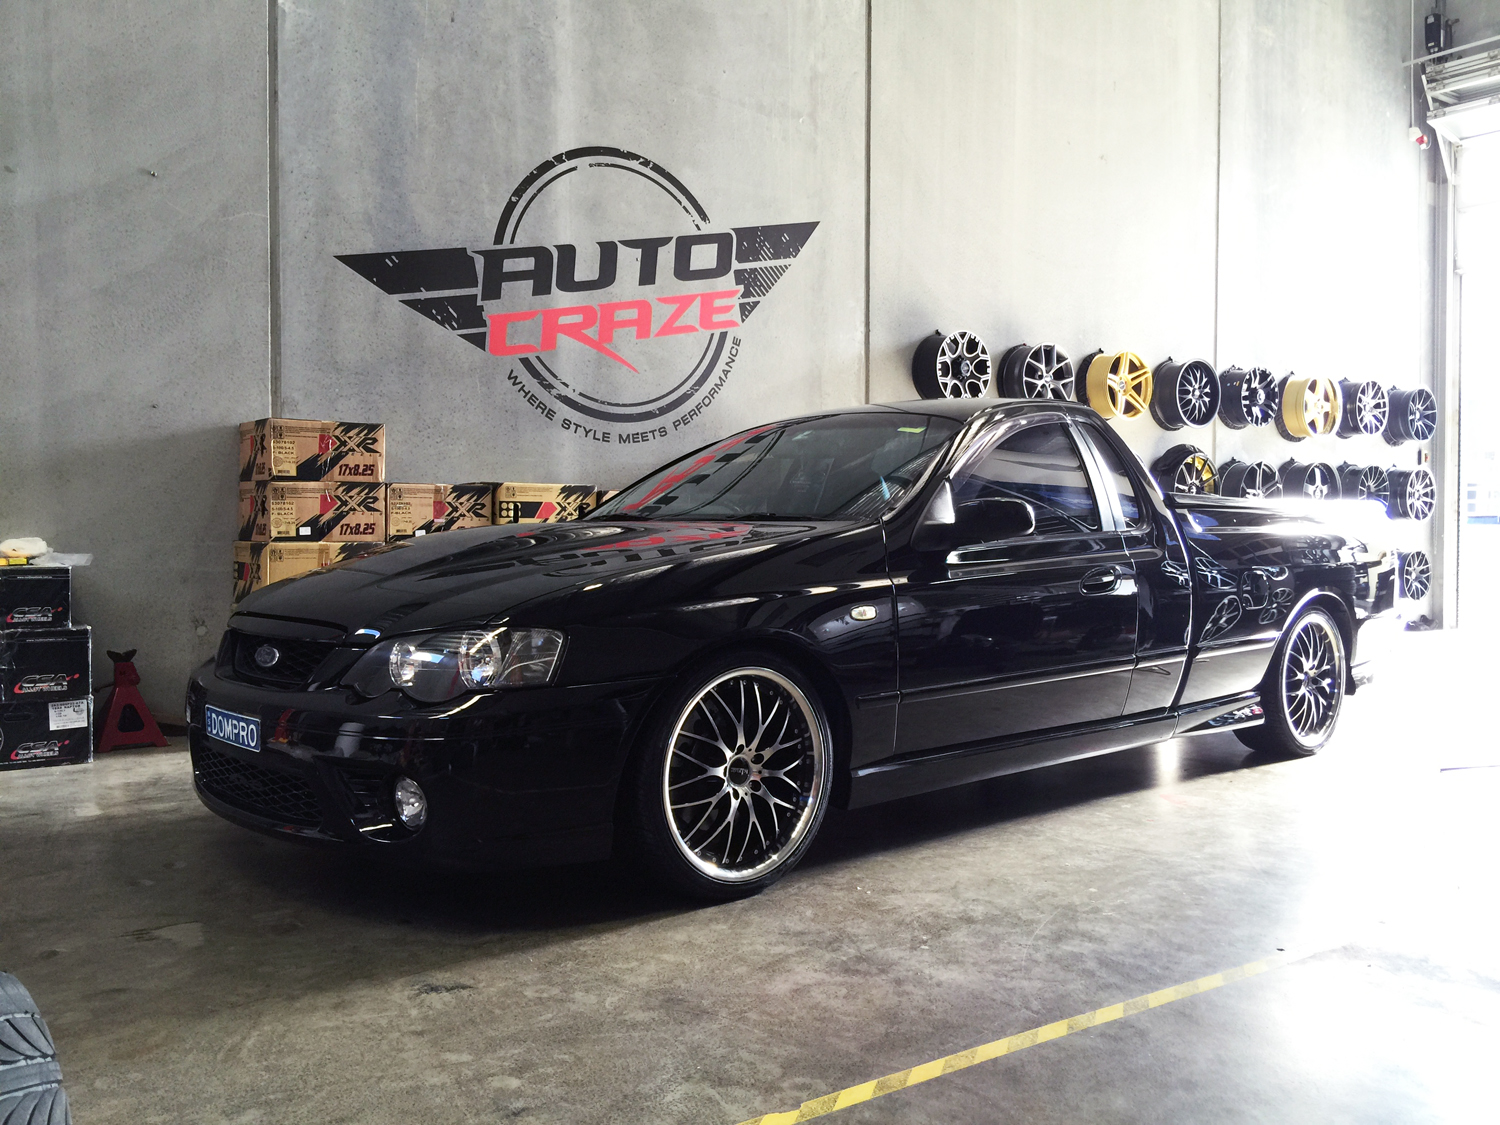 Ford Falcon XR8 with King Malice